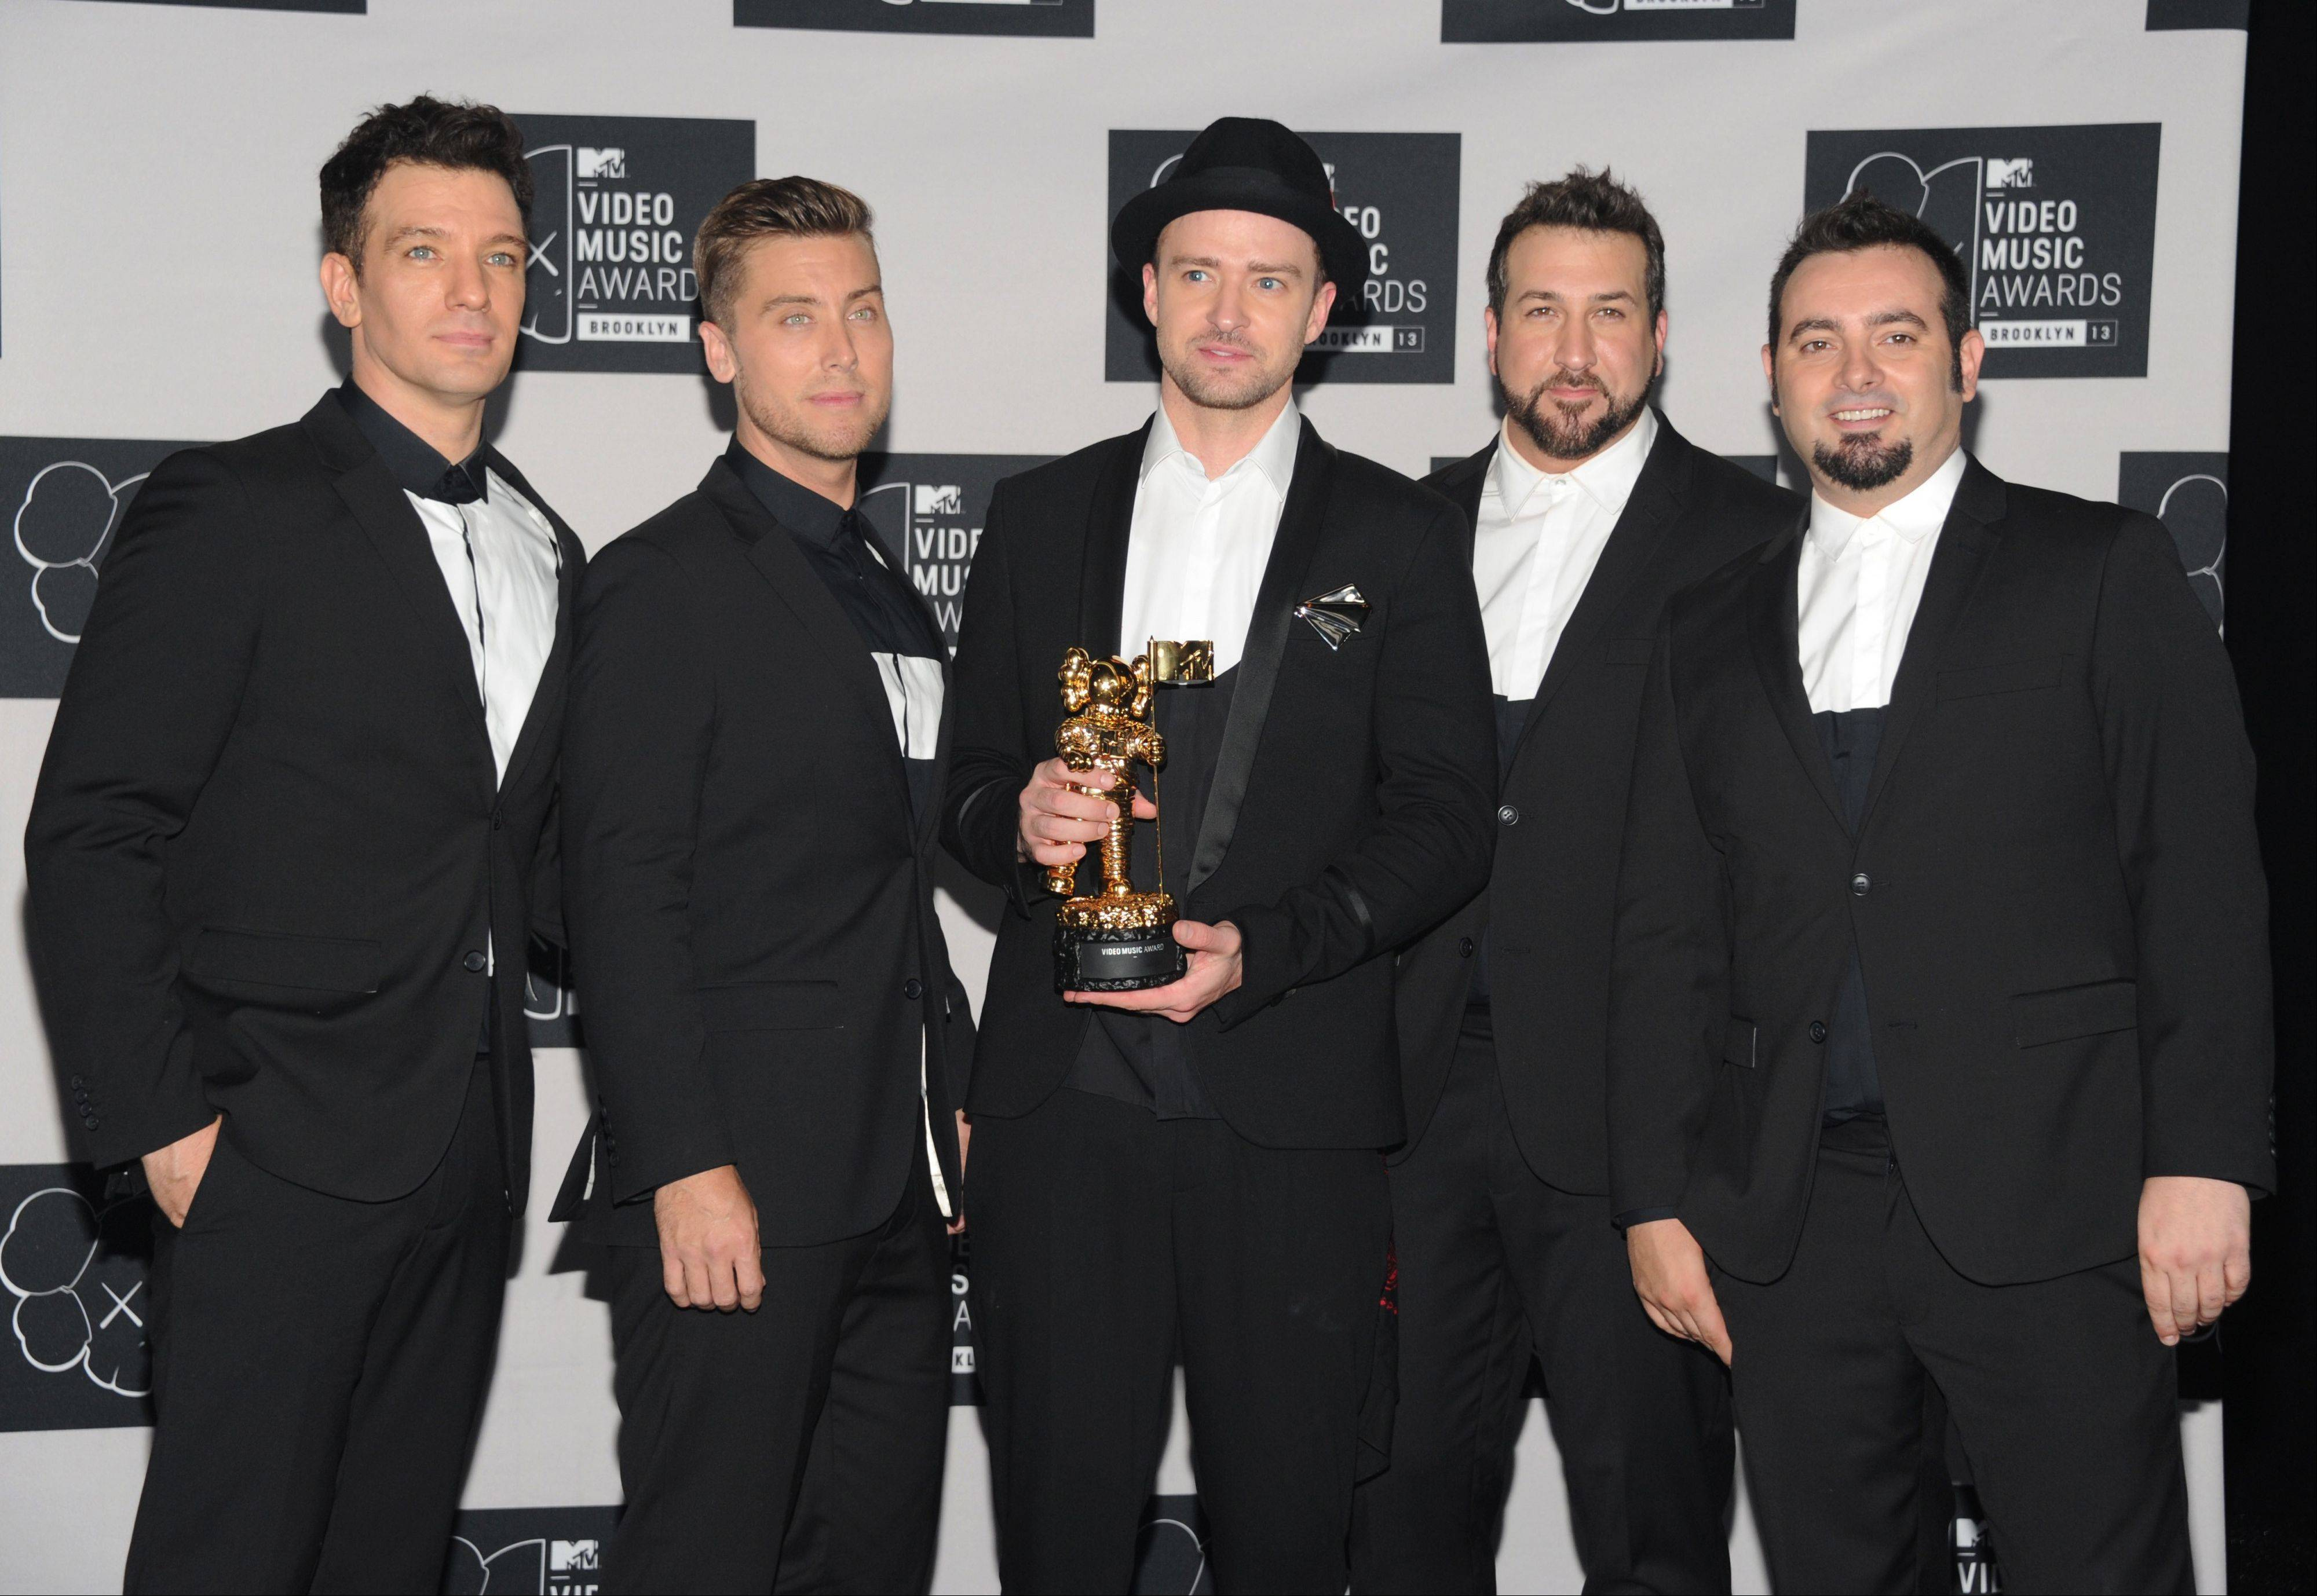 Justin Timberlake, center, winner of the video vanguard award with, from left, JC Chasez, Lance Bass, Joey Fatone and Chris Kirkpatrick of 'N Sync at the MTV Video Music Awards on Sunday.